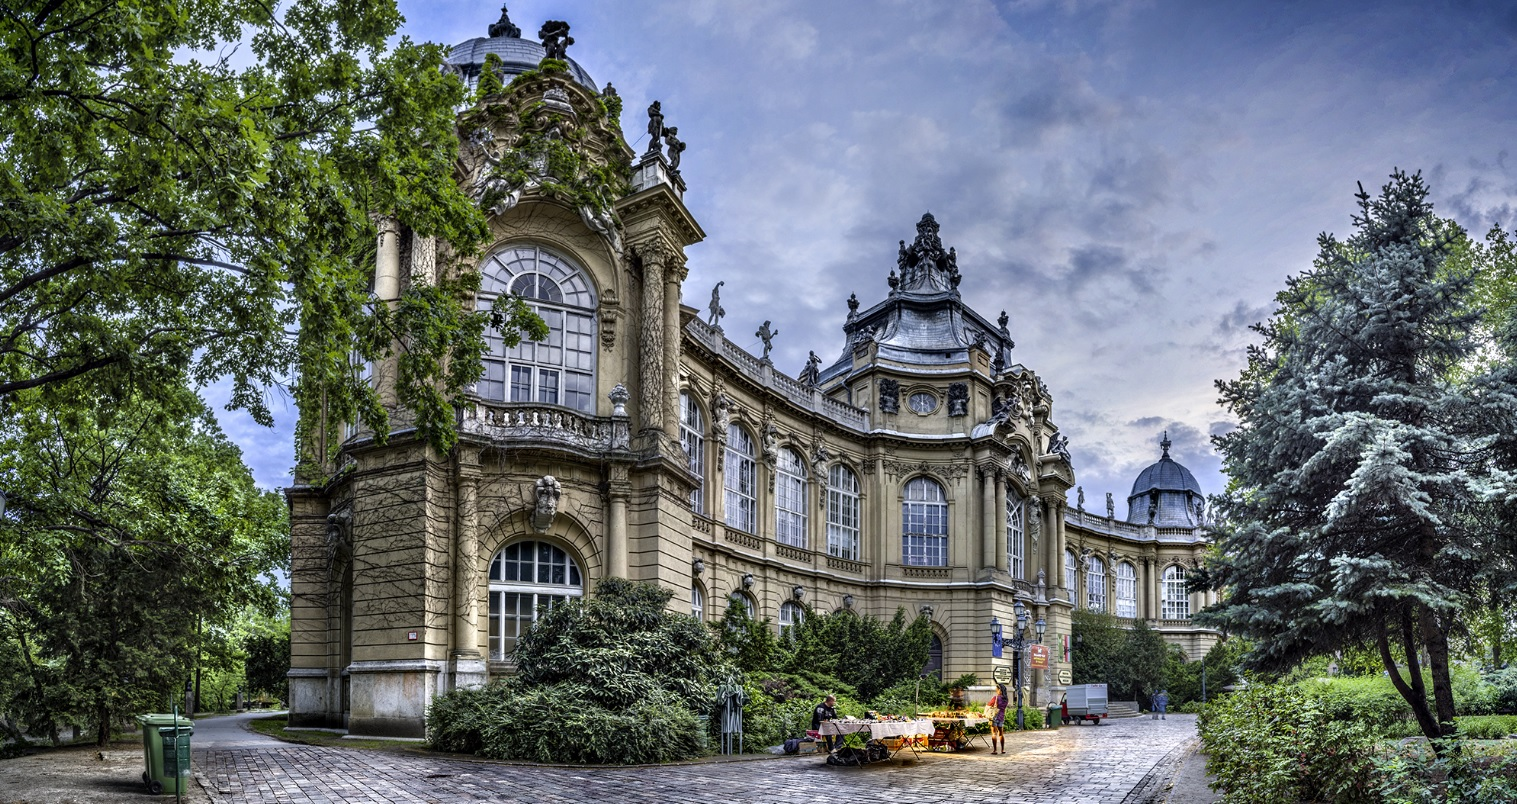 City Park, offbeat things to do in Budapest